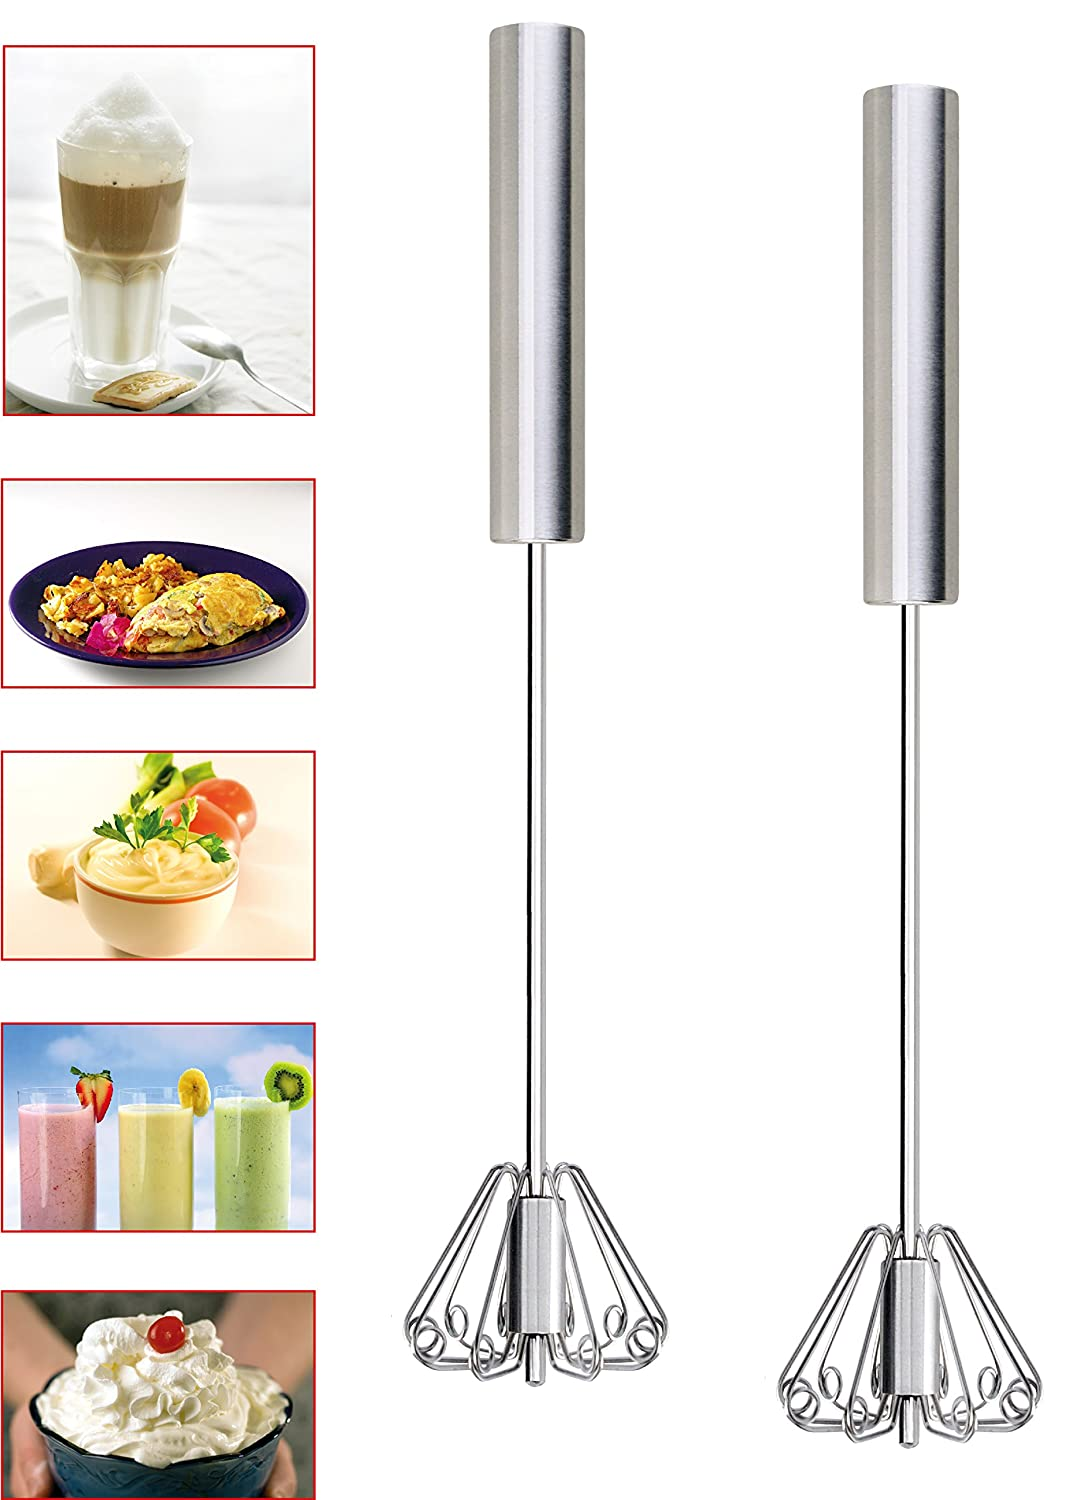 Cooks Innovations Rotary Hand Push Zip Whisk Stainless Steel 35.5 cm long